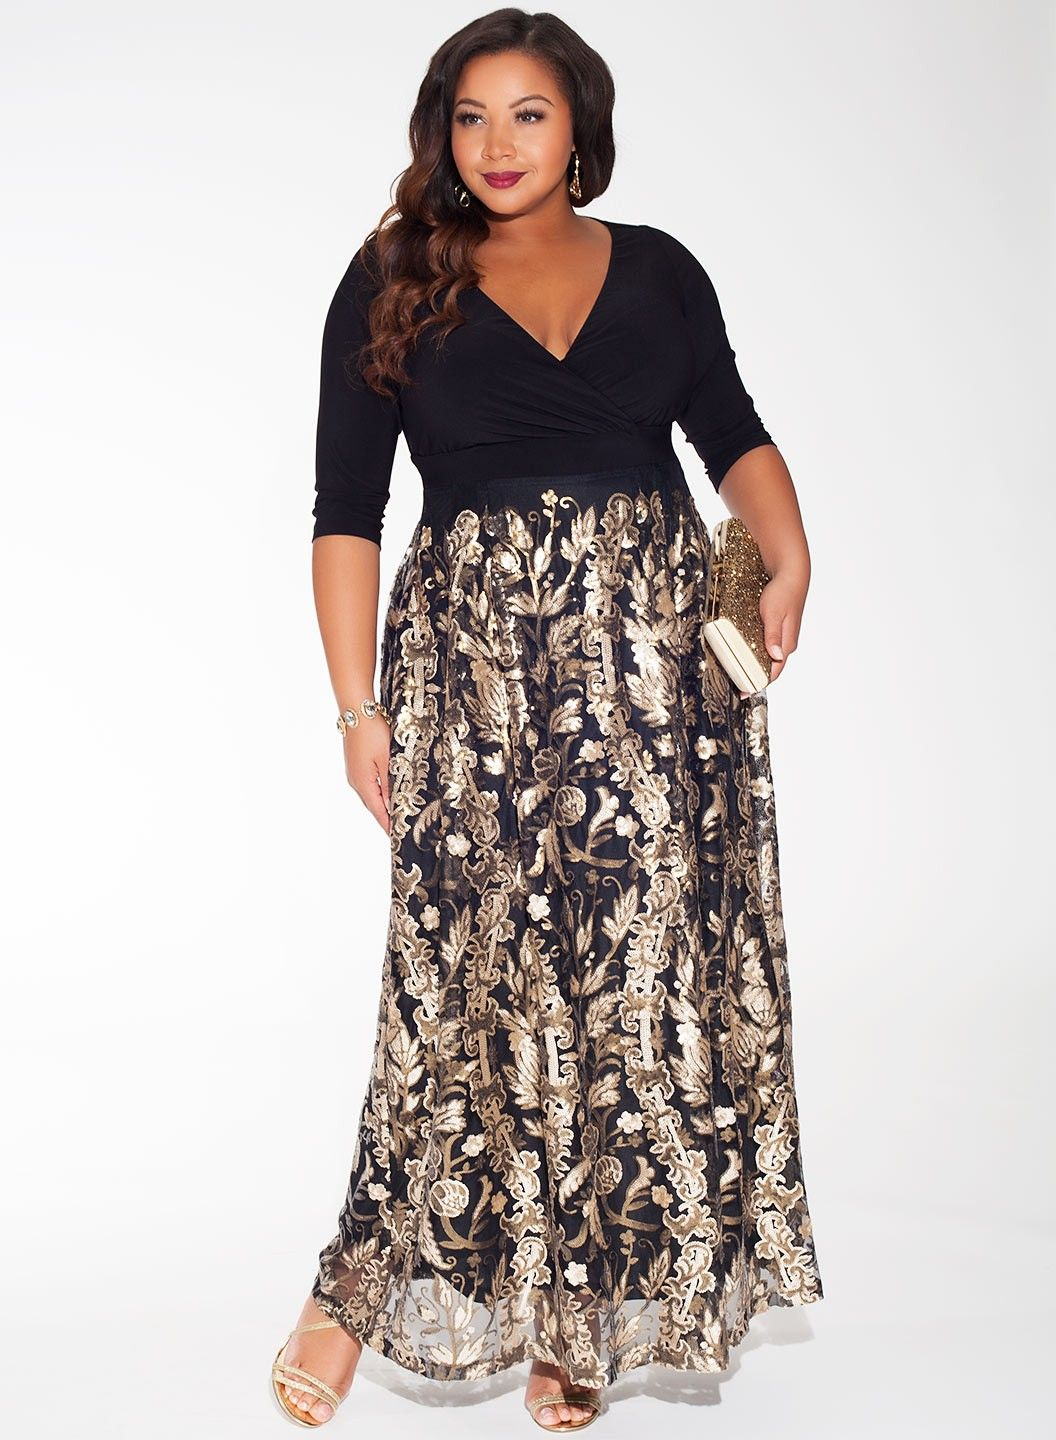 Y Plus Size Dresses For Formal Occasions